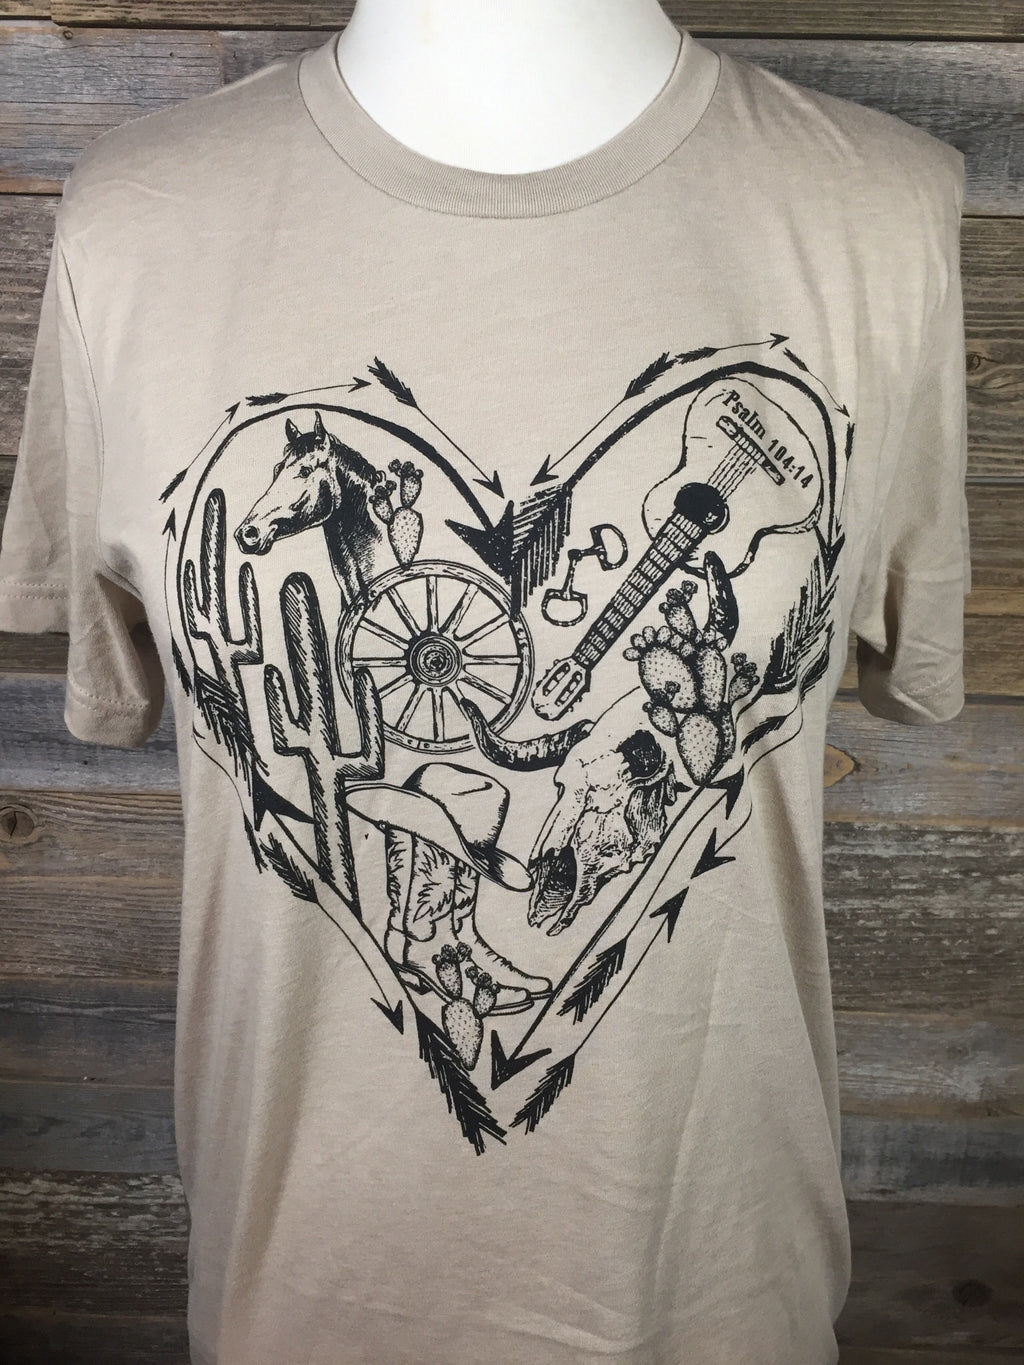 Good Hearted Woman T-shirt